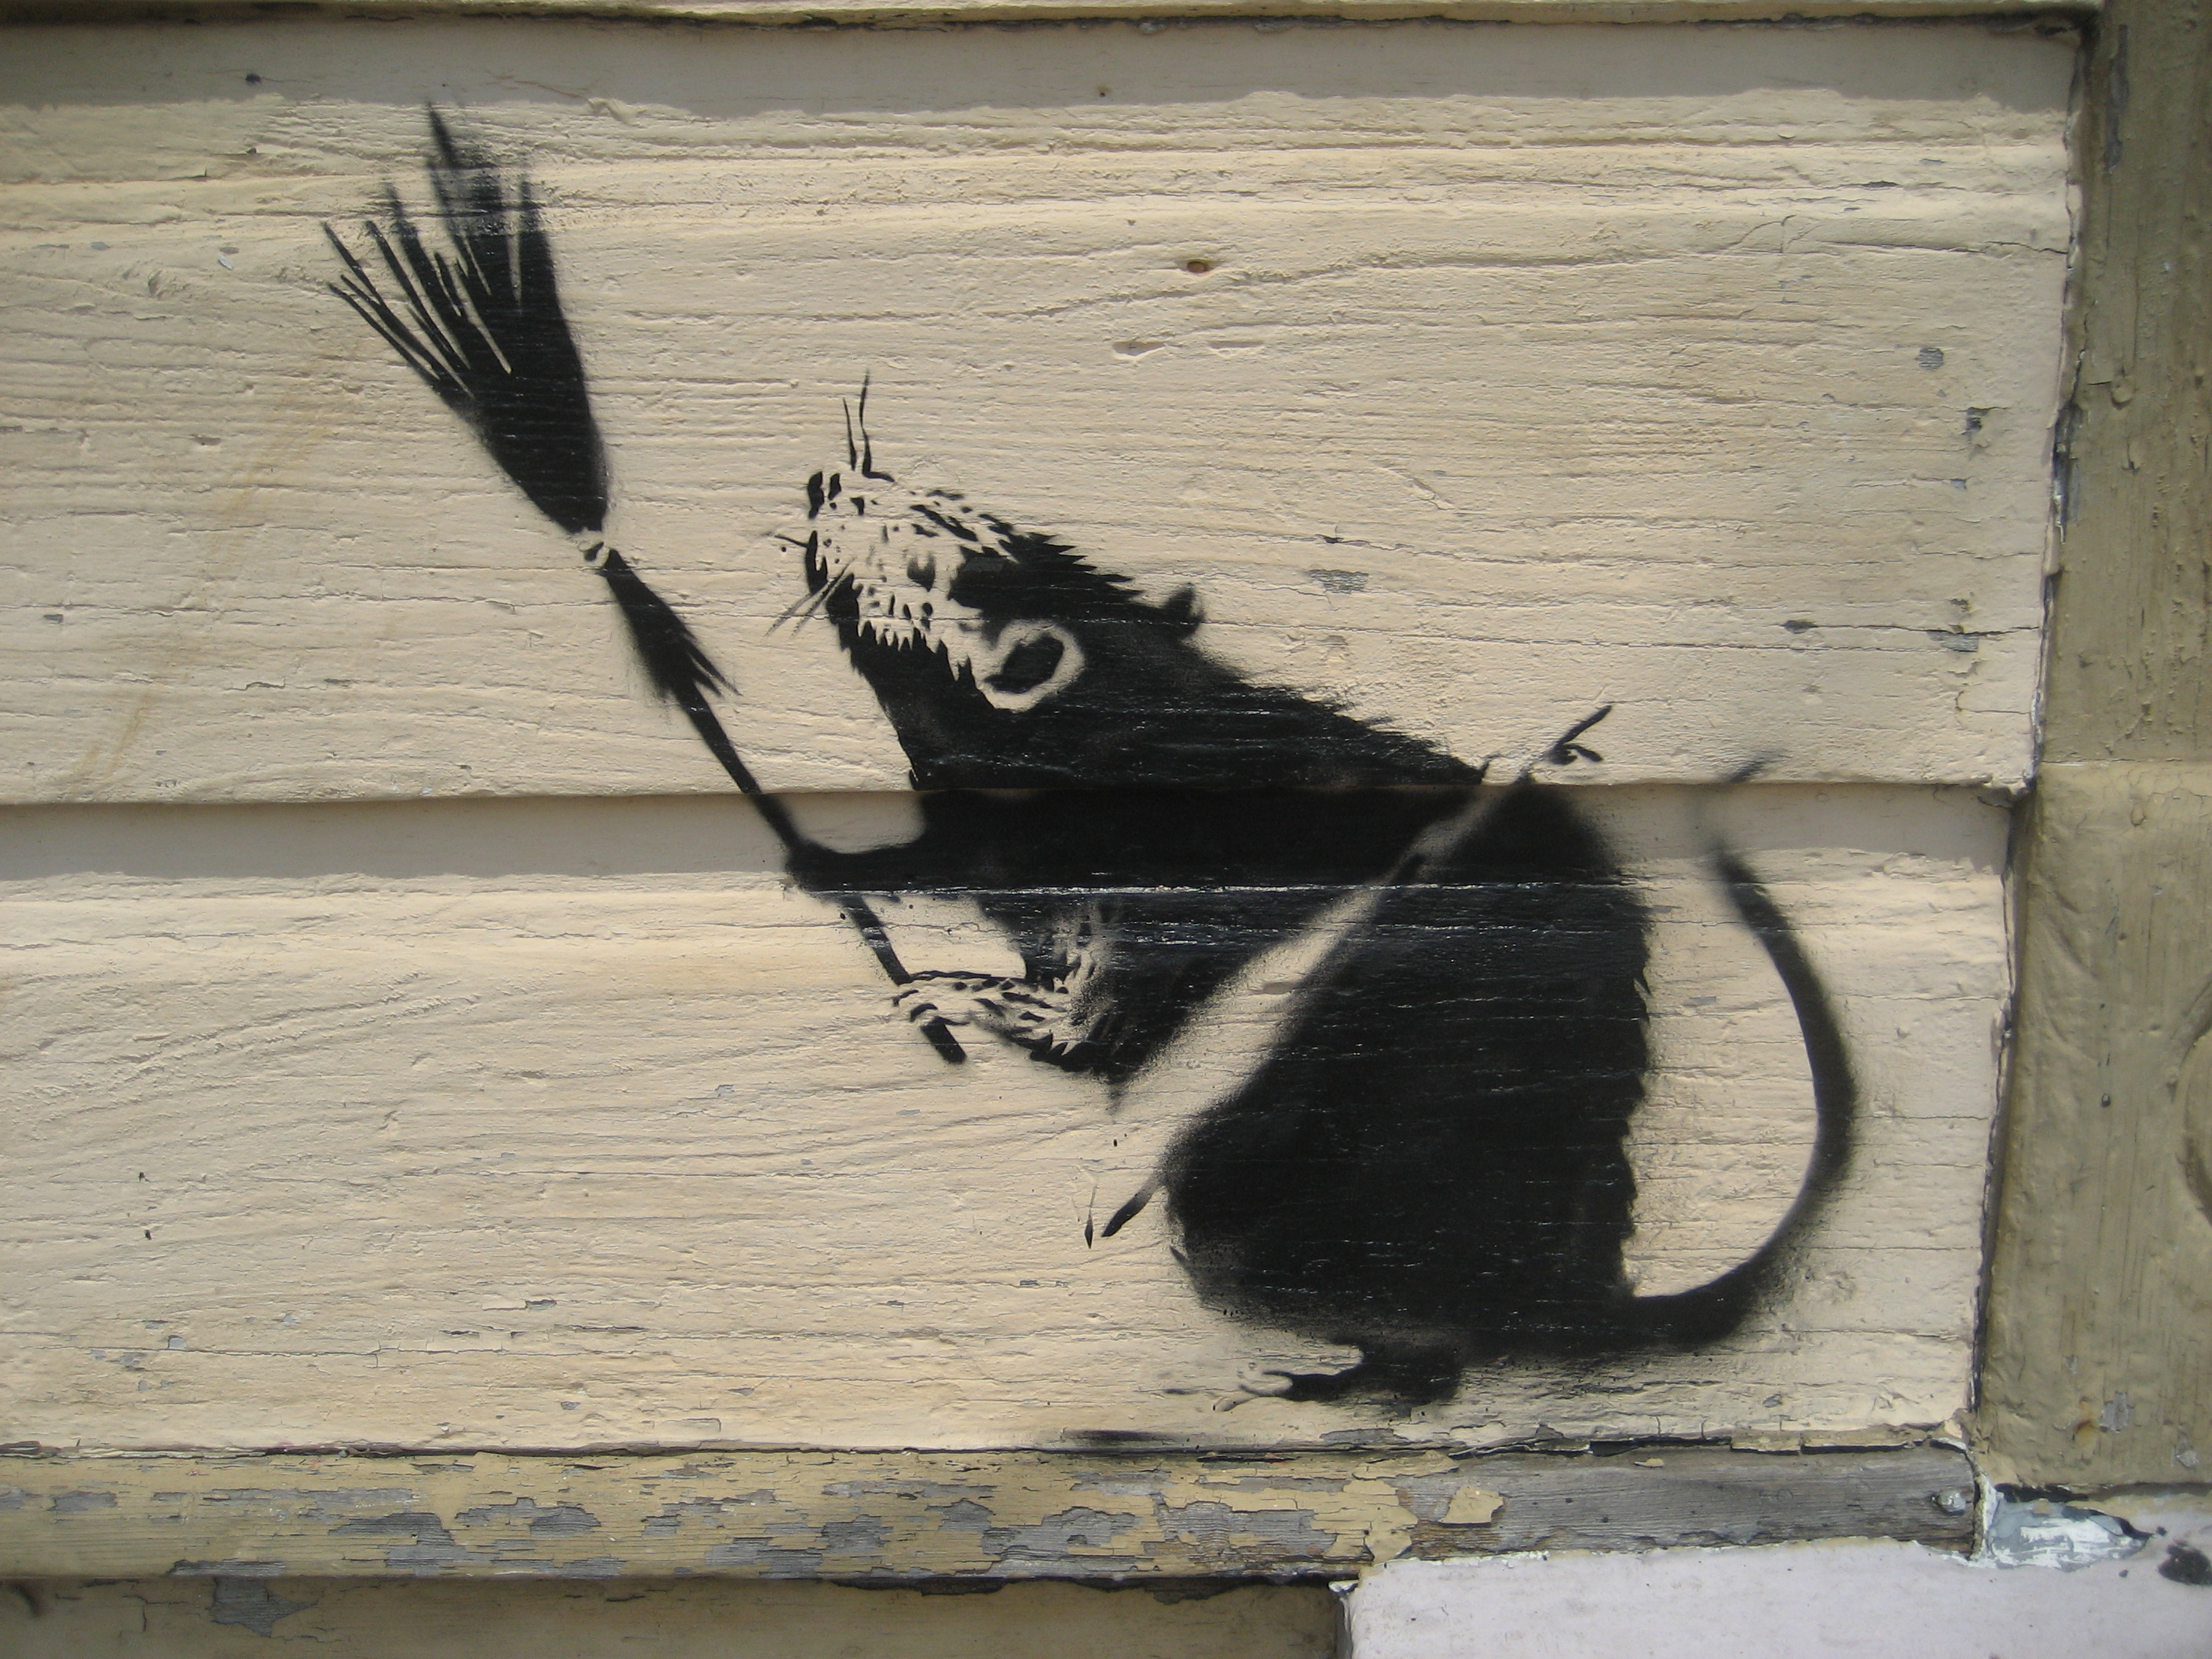 File banksy broom rat new wikimedia commons for Banksy mural painted over